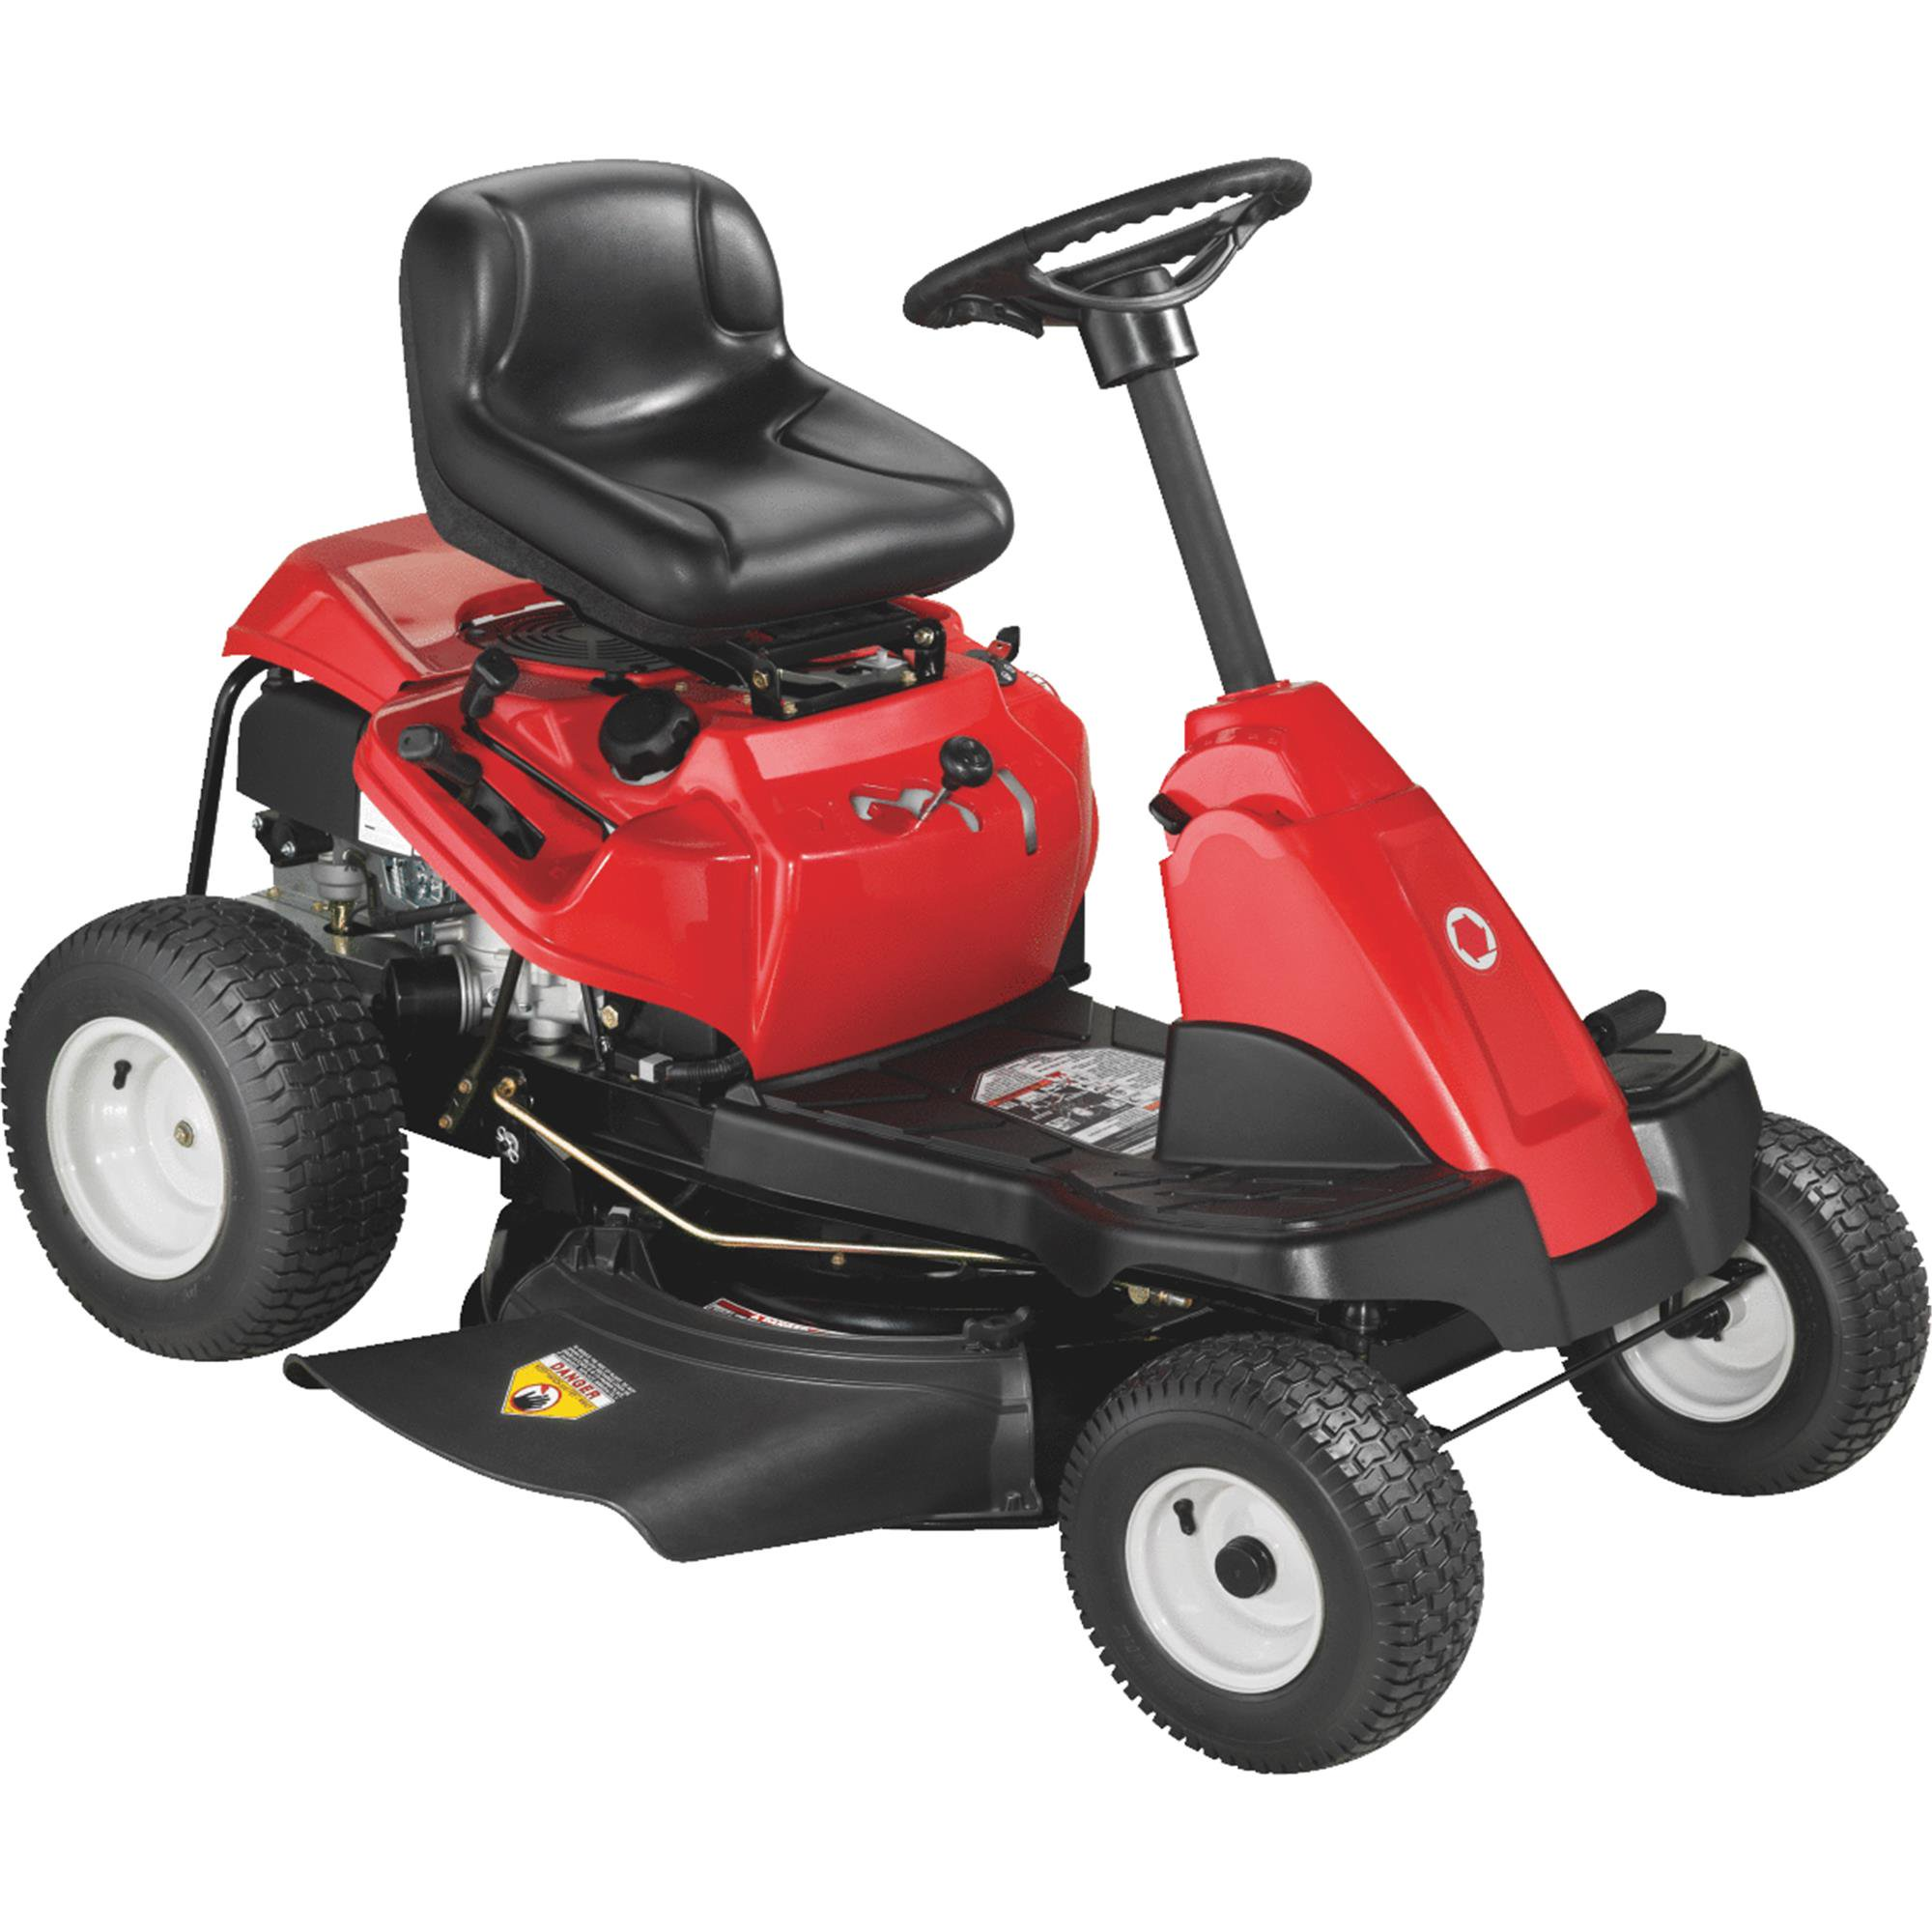 Troy Bilt Lawn Tractor by MTD PRODUCTS INC